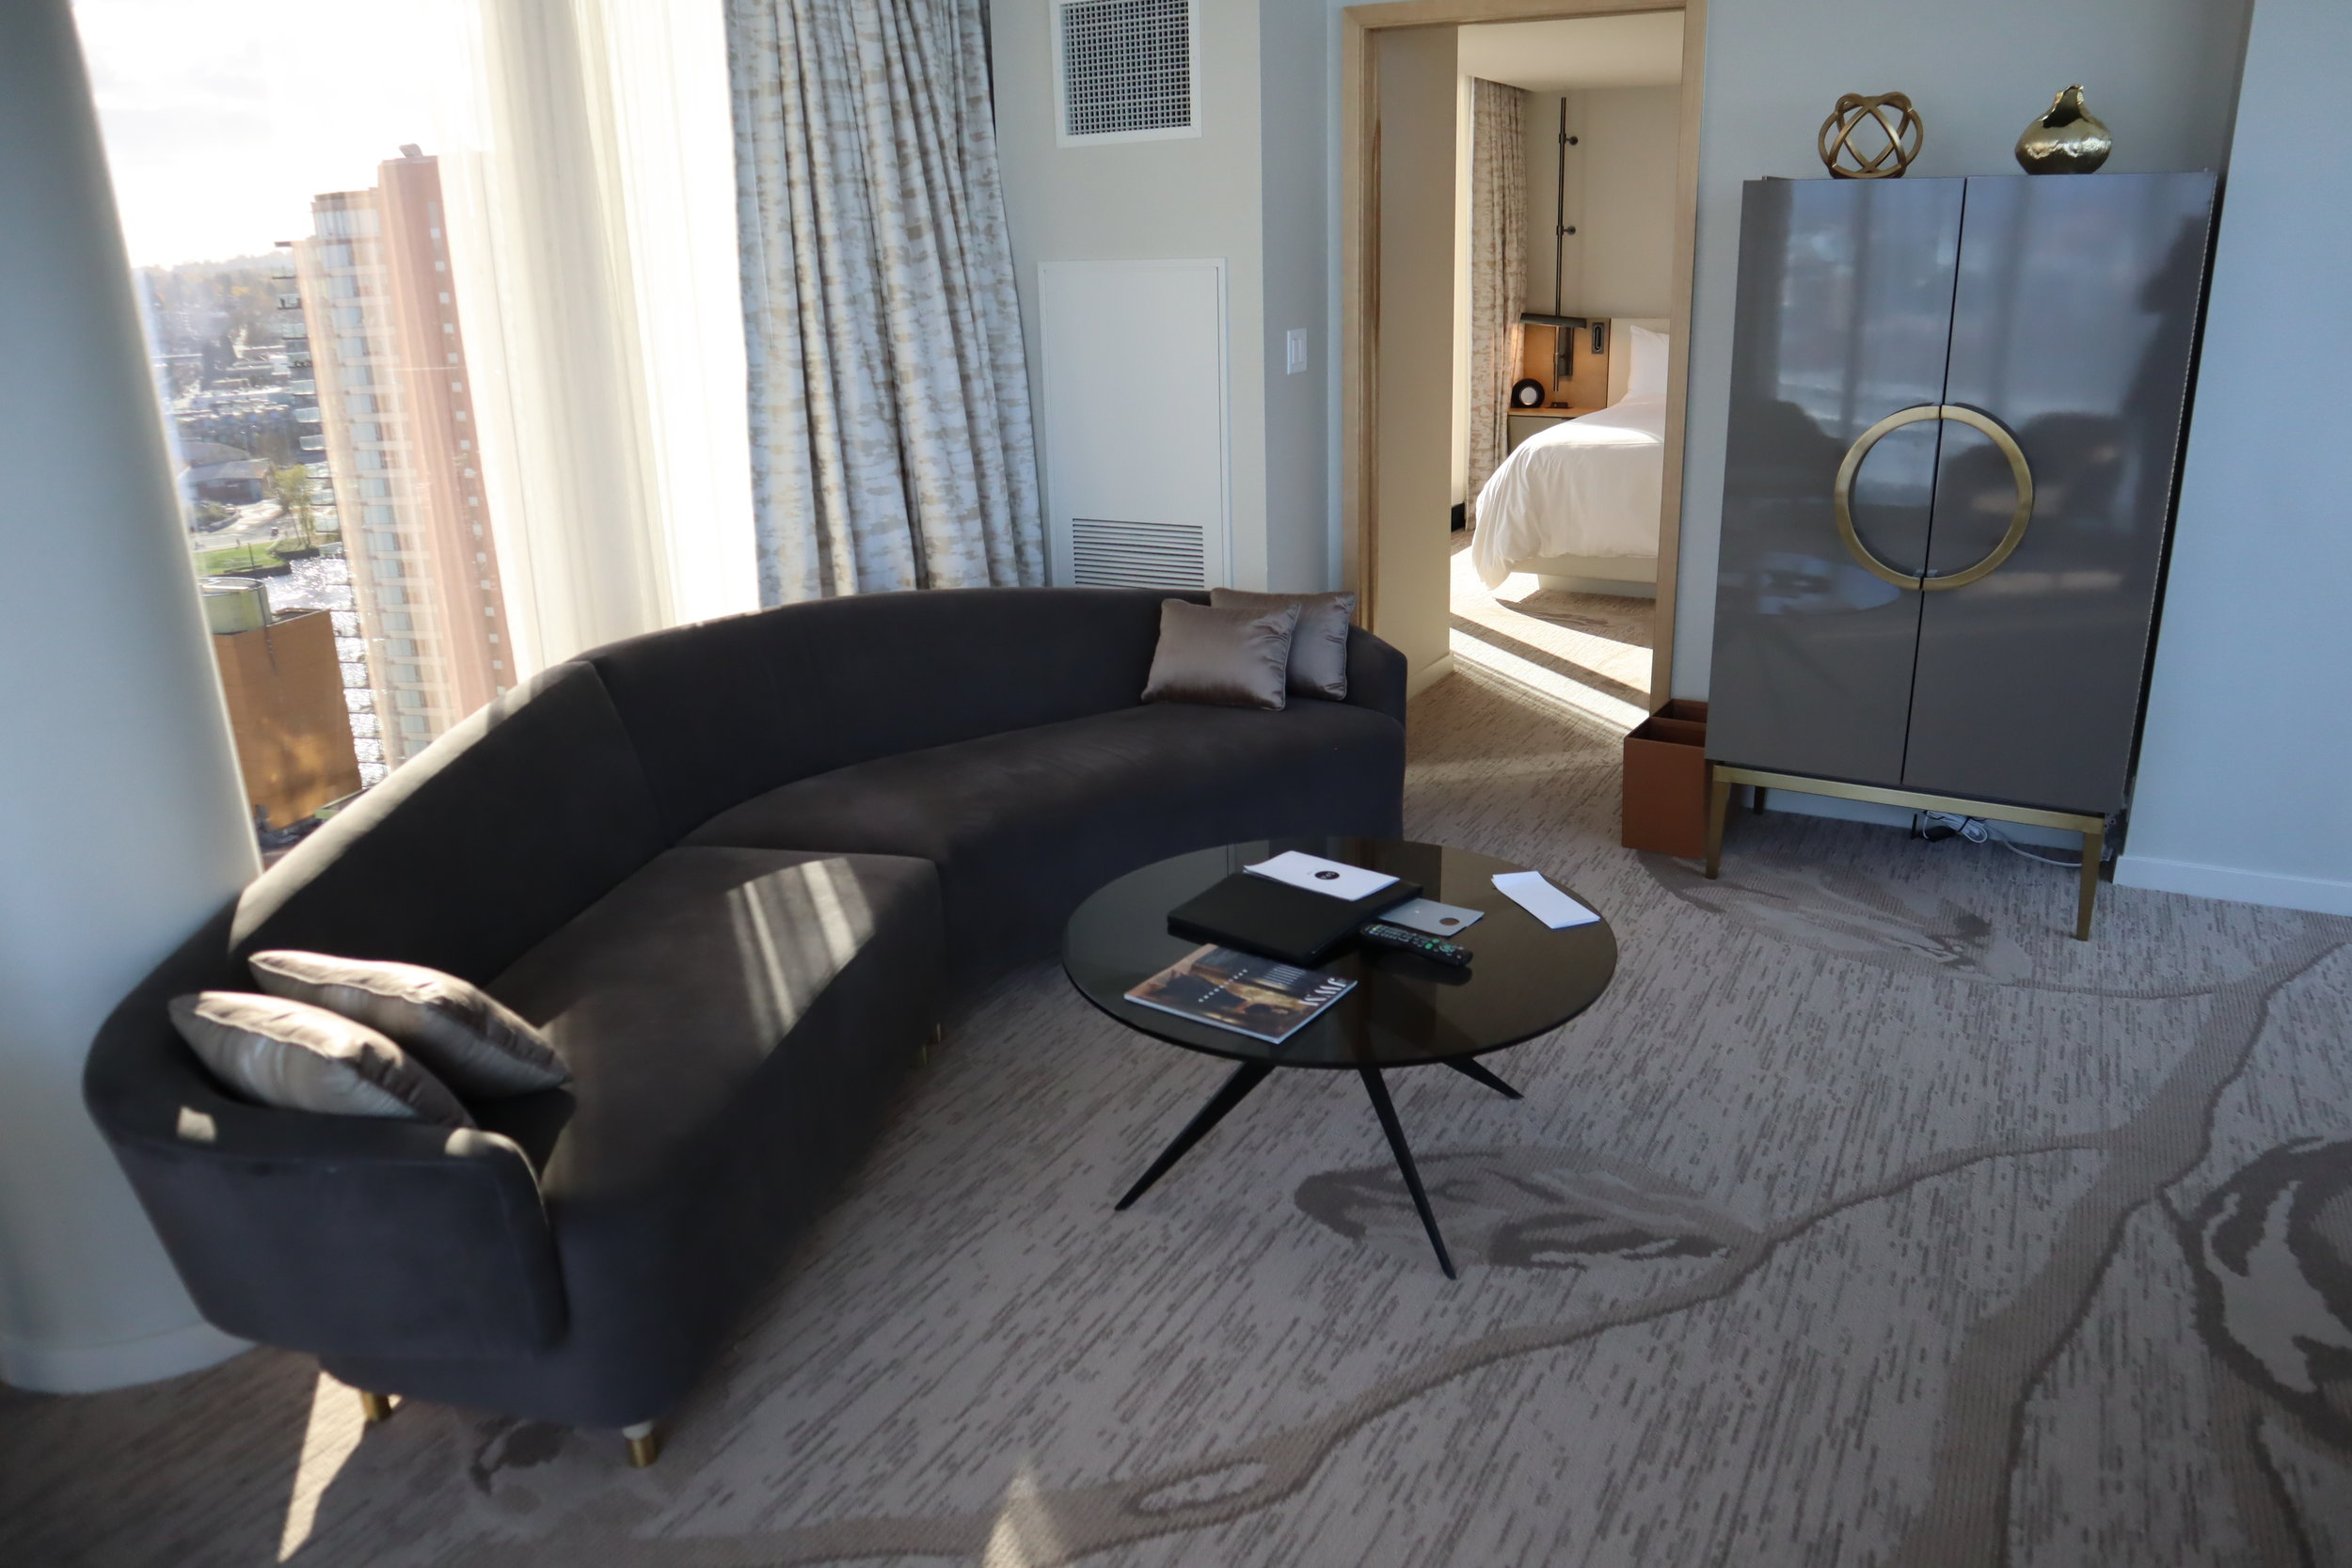 JW Marriott Parq Vancouver – One-bedroom suite living room